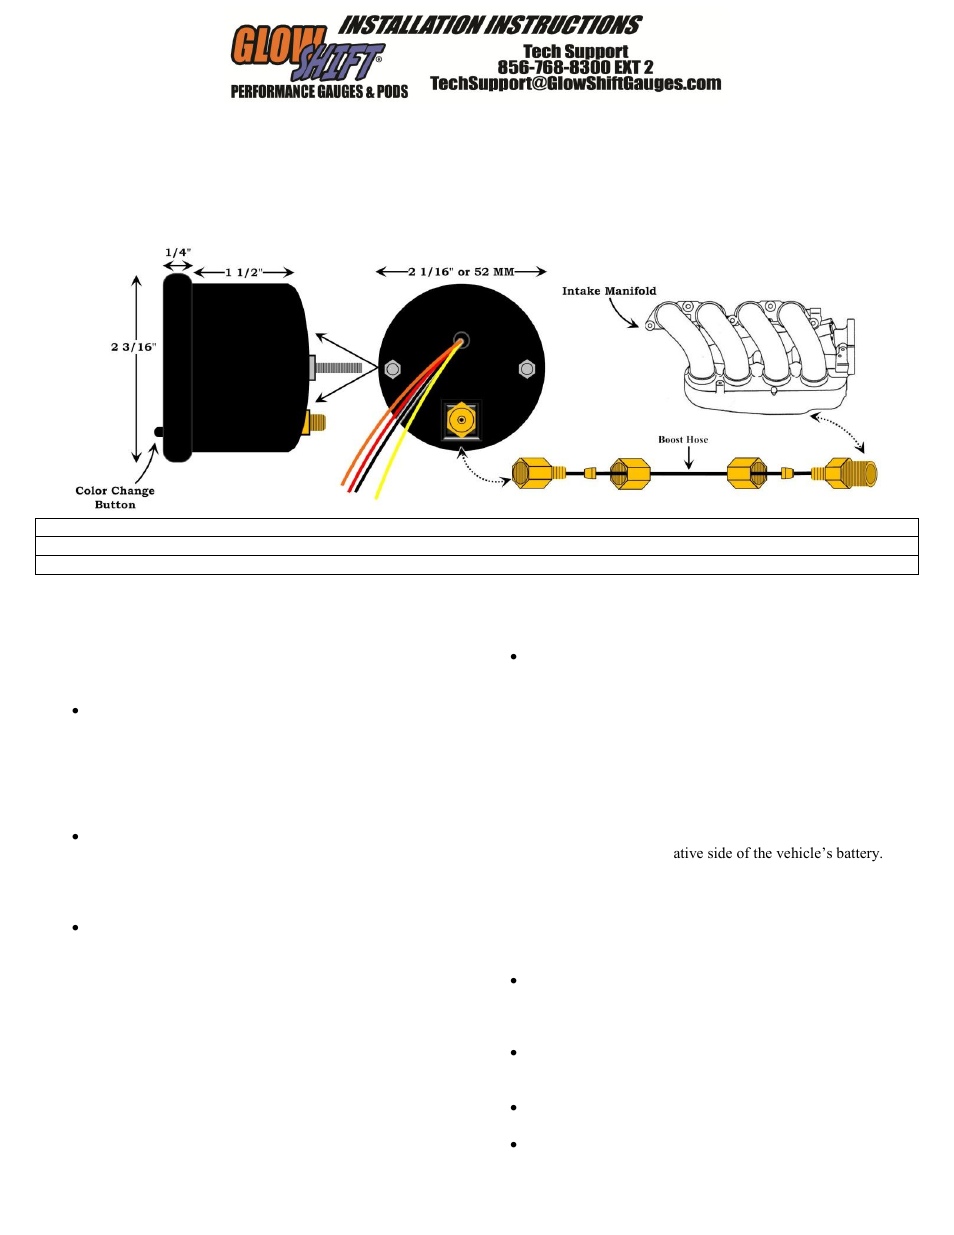 Glowshift Gauge Wiring Diagram - 1987 Gmc Truck Headlight Wiring -  fusebox.tukune.jeanjaures37.fr | Wrx Glowshift Wiring Diagram |  | Wiring Diagram Resource